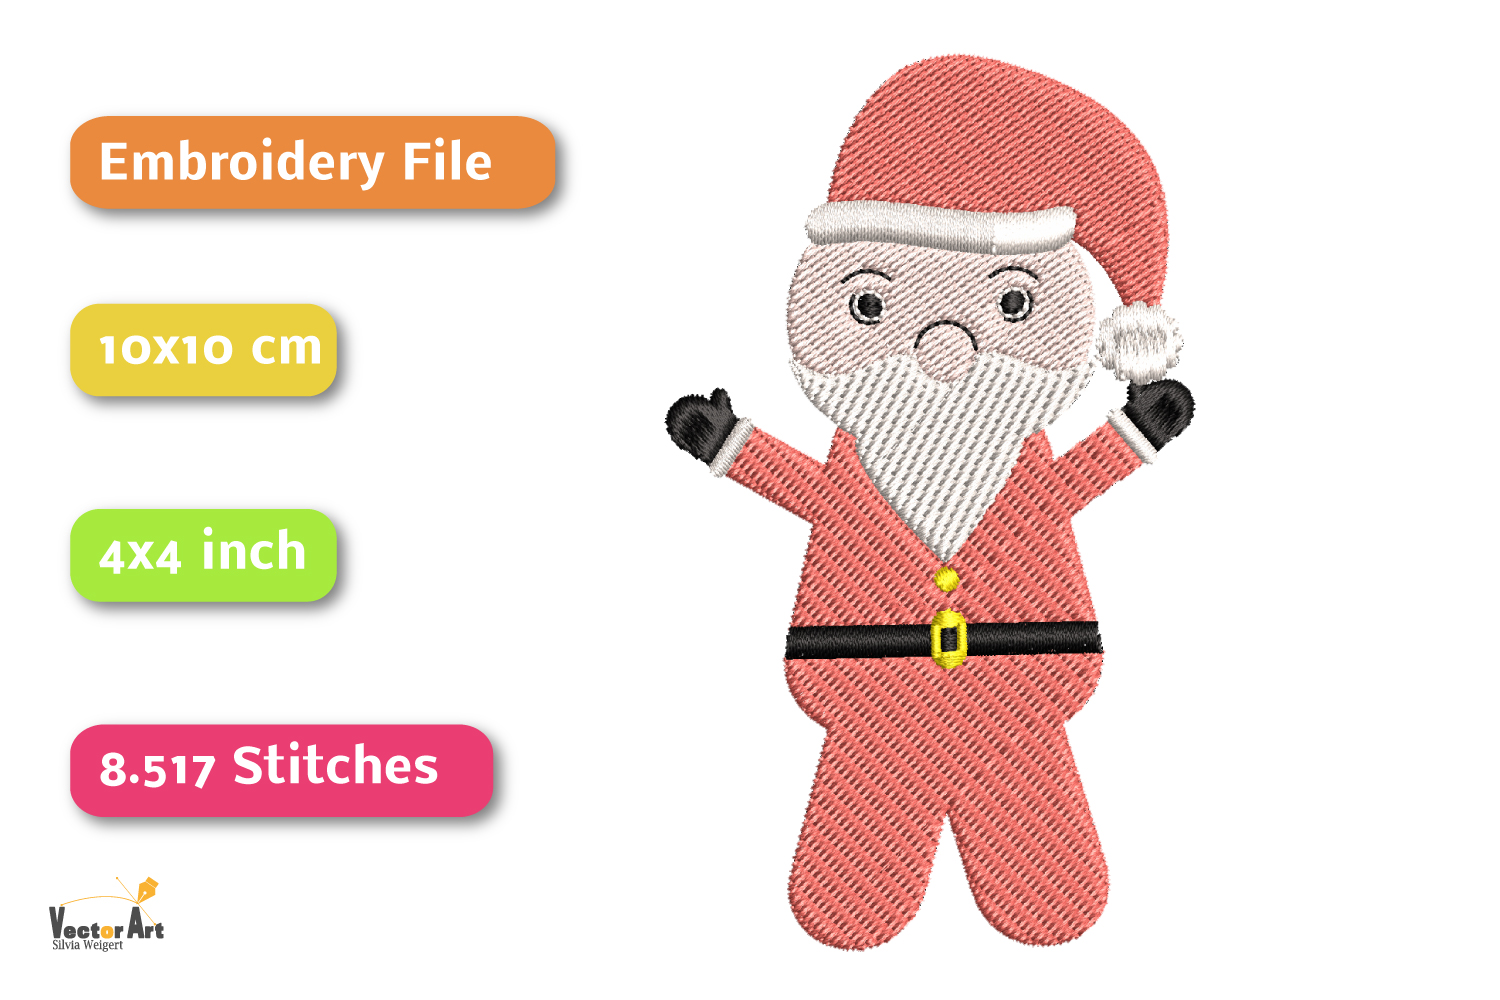 Santa Claus - Embroidery File - 4x4 inch example image 2